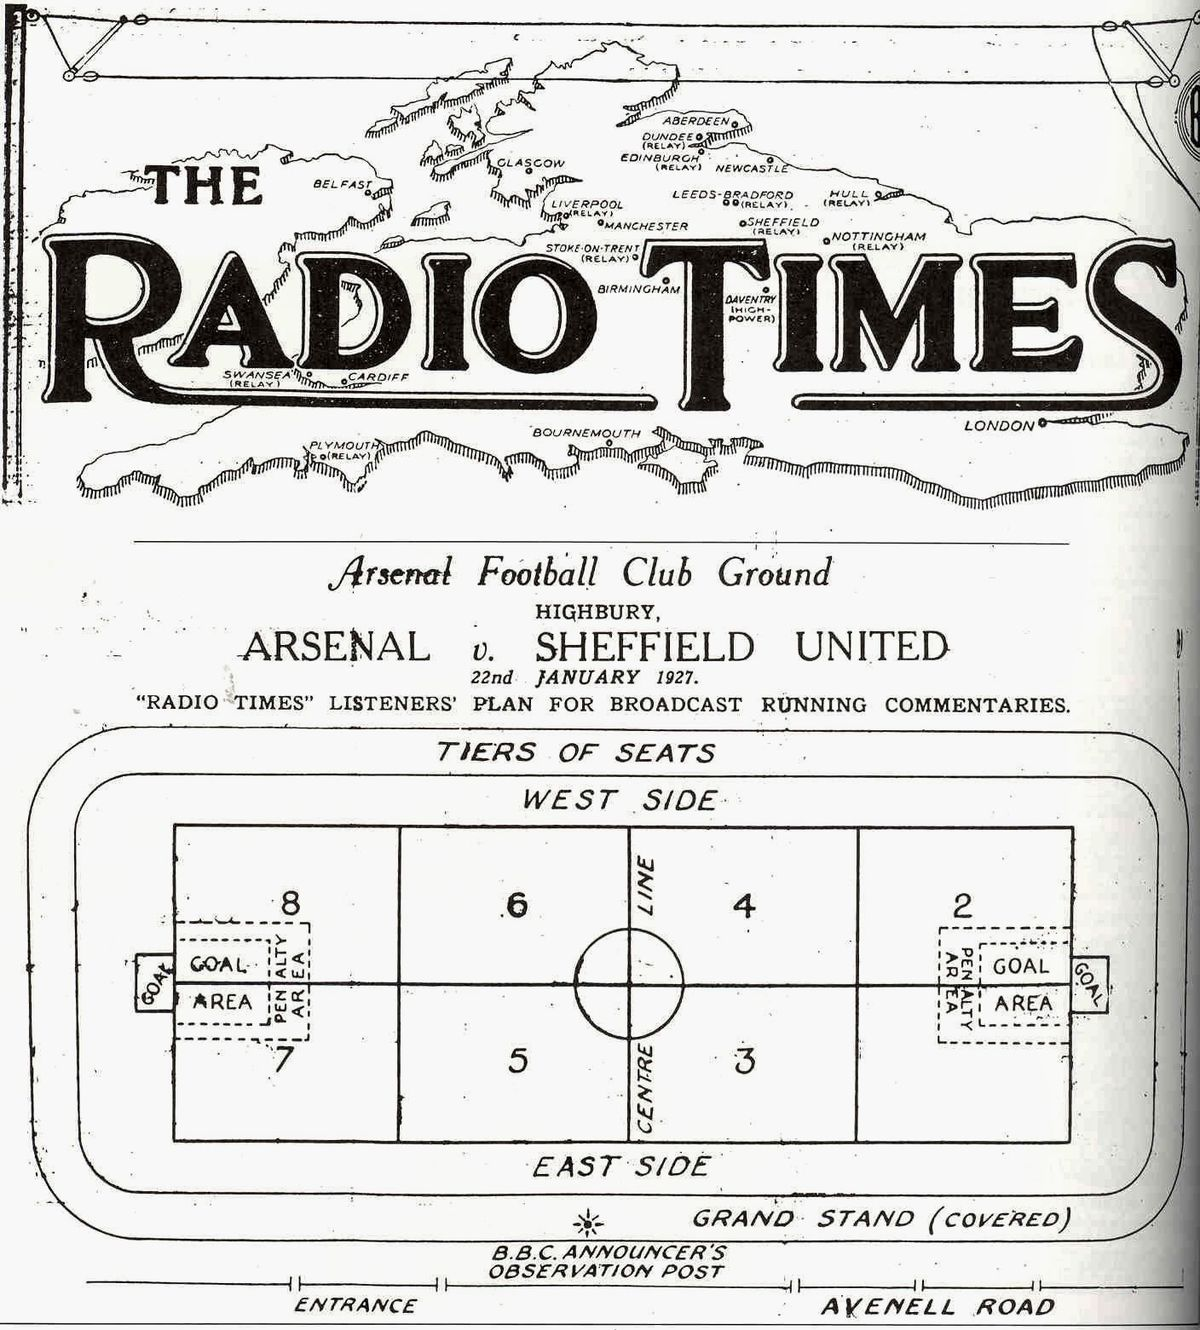 The Radio Times grid for the Arsenal v Sheffield United football match